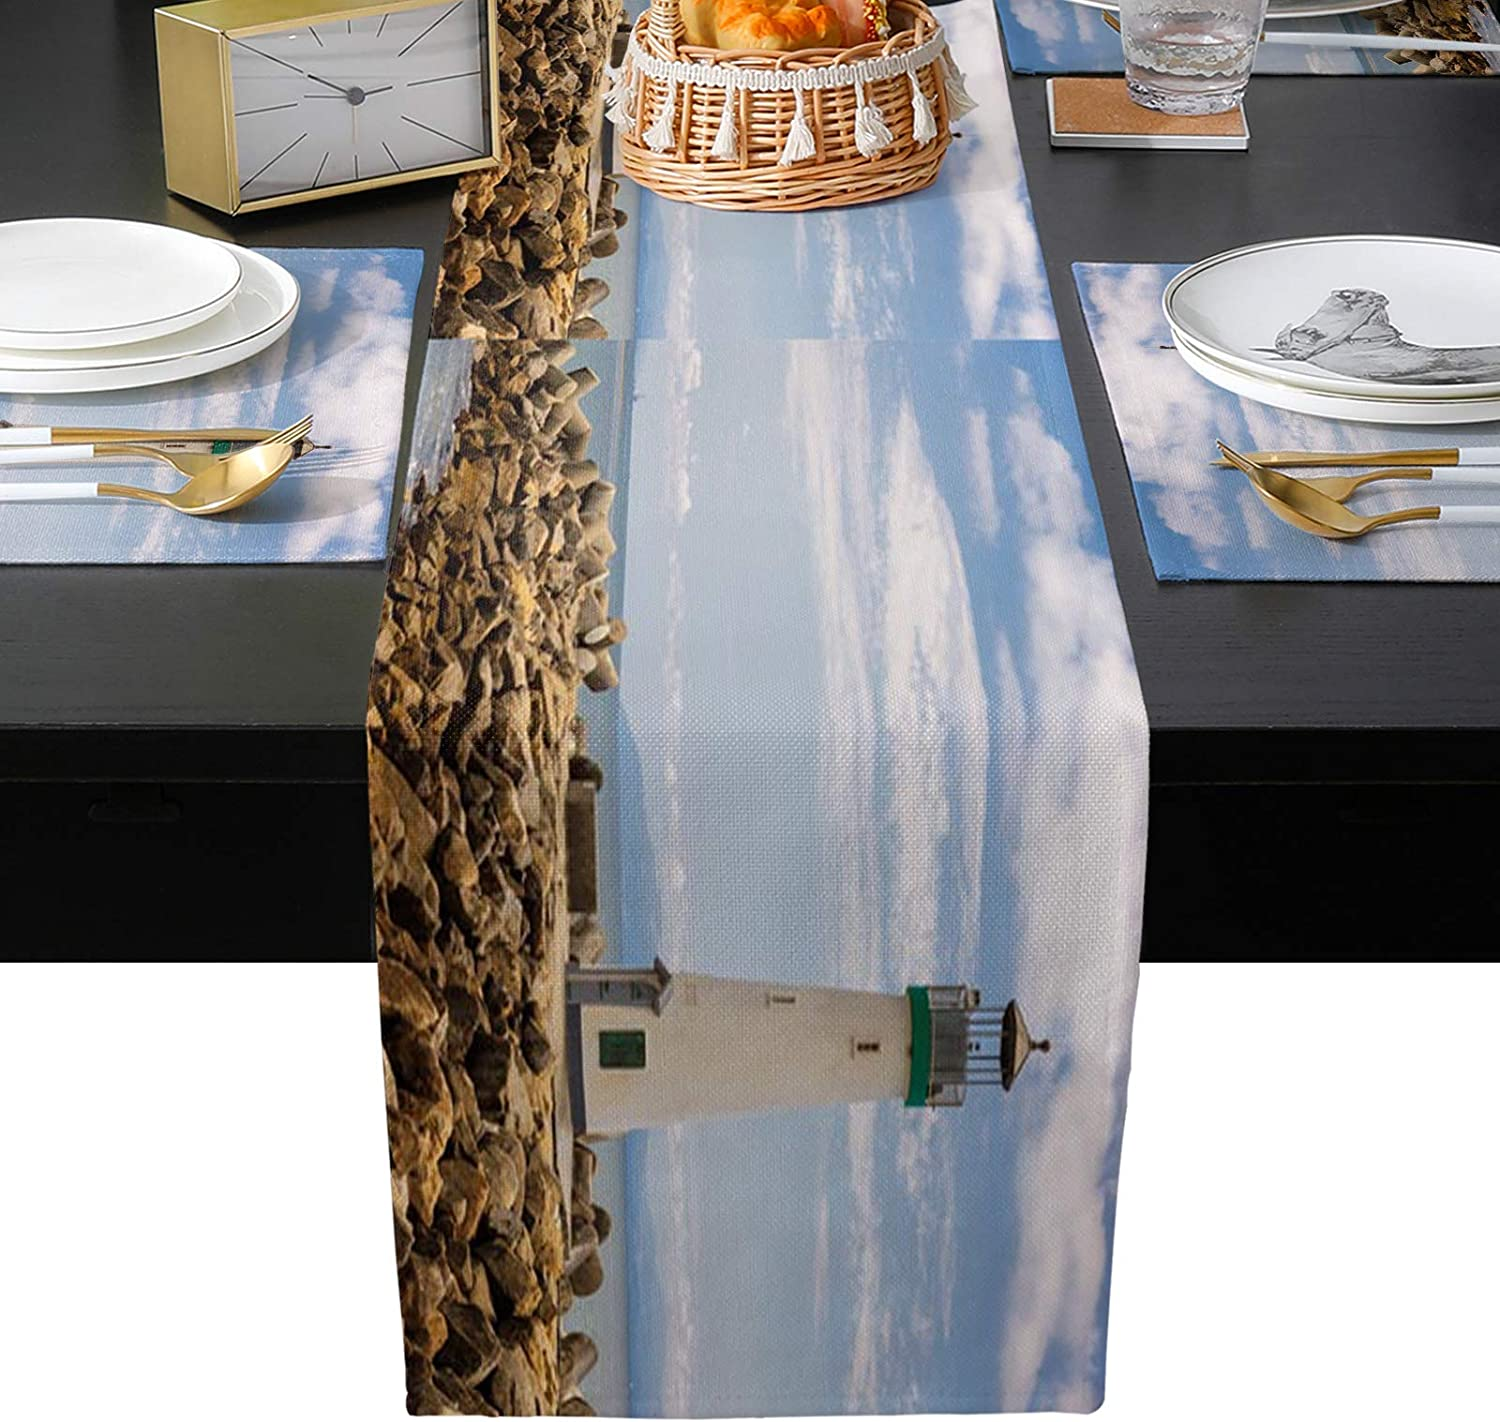 IDOWMAT Burlap Table Runner with Lightho Dealing full price reduction Walton 4 Placemats Max 48% OFF Pcs